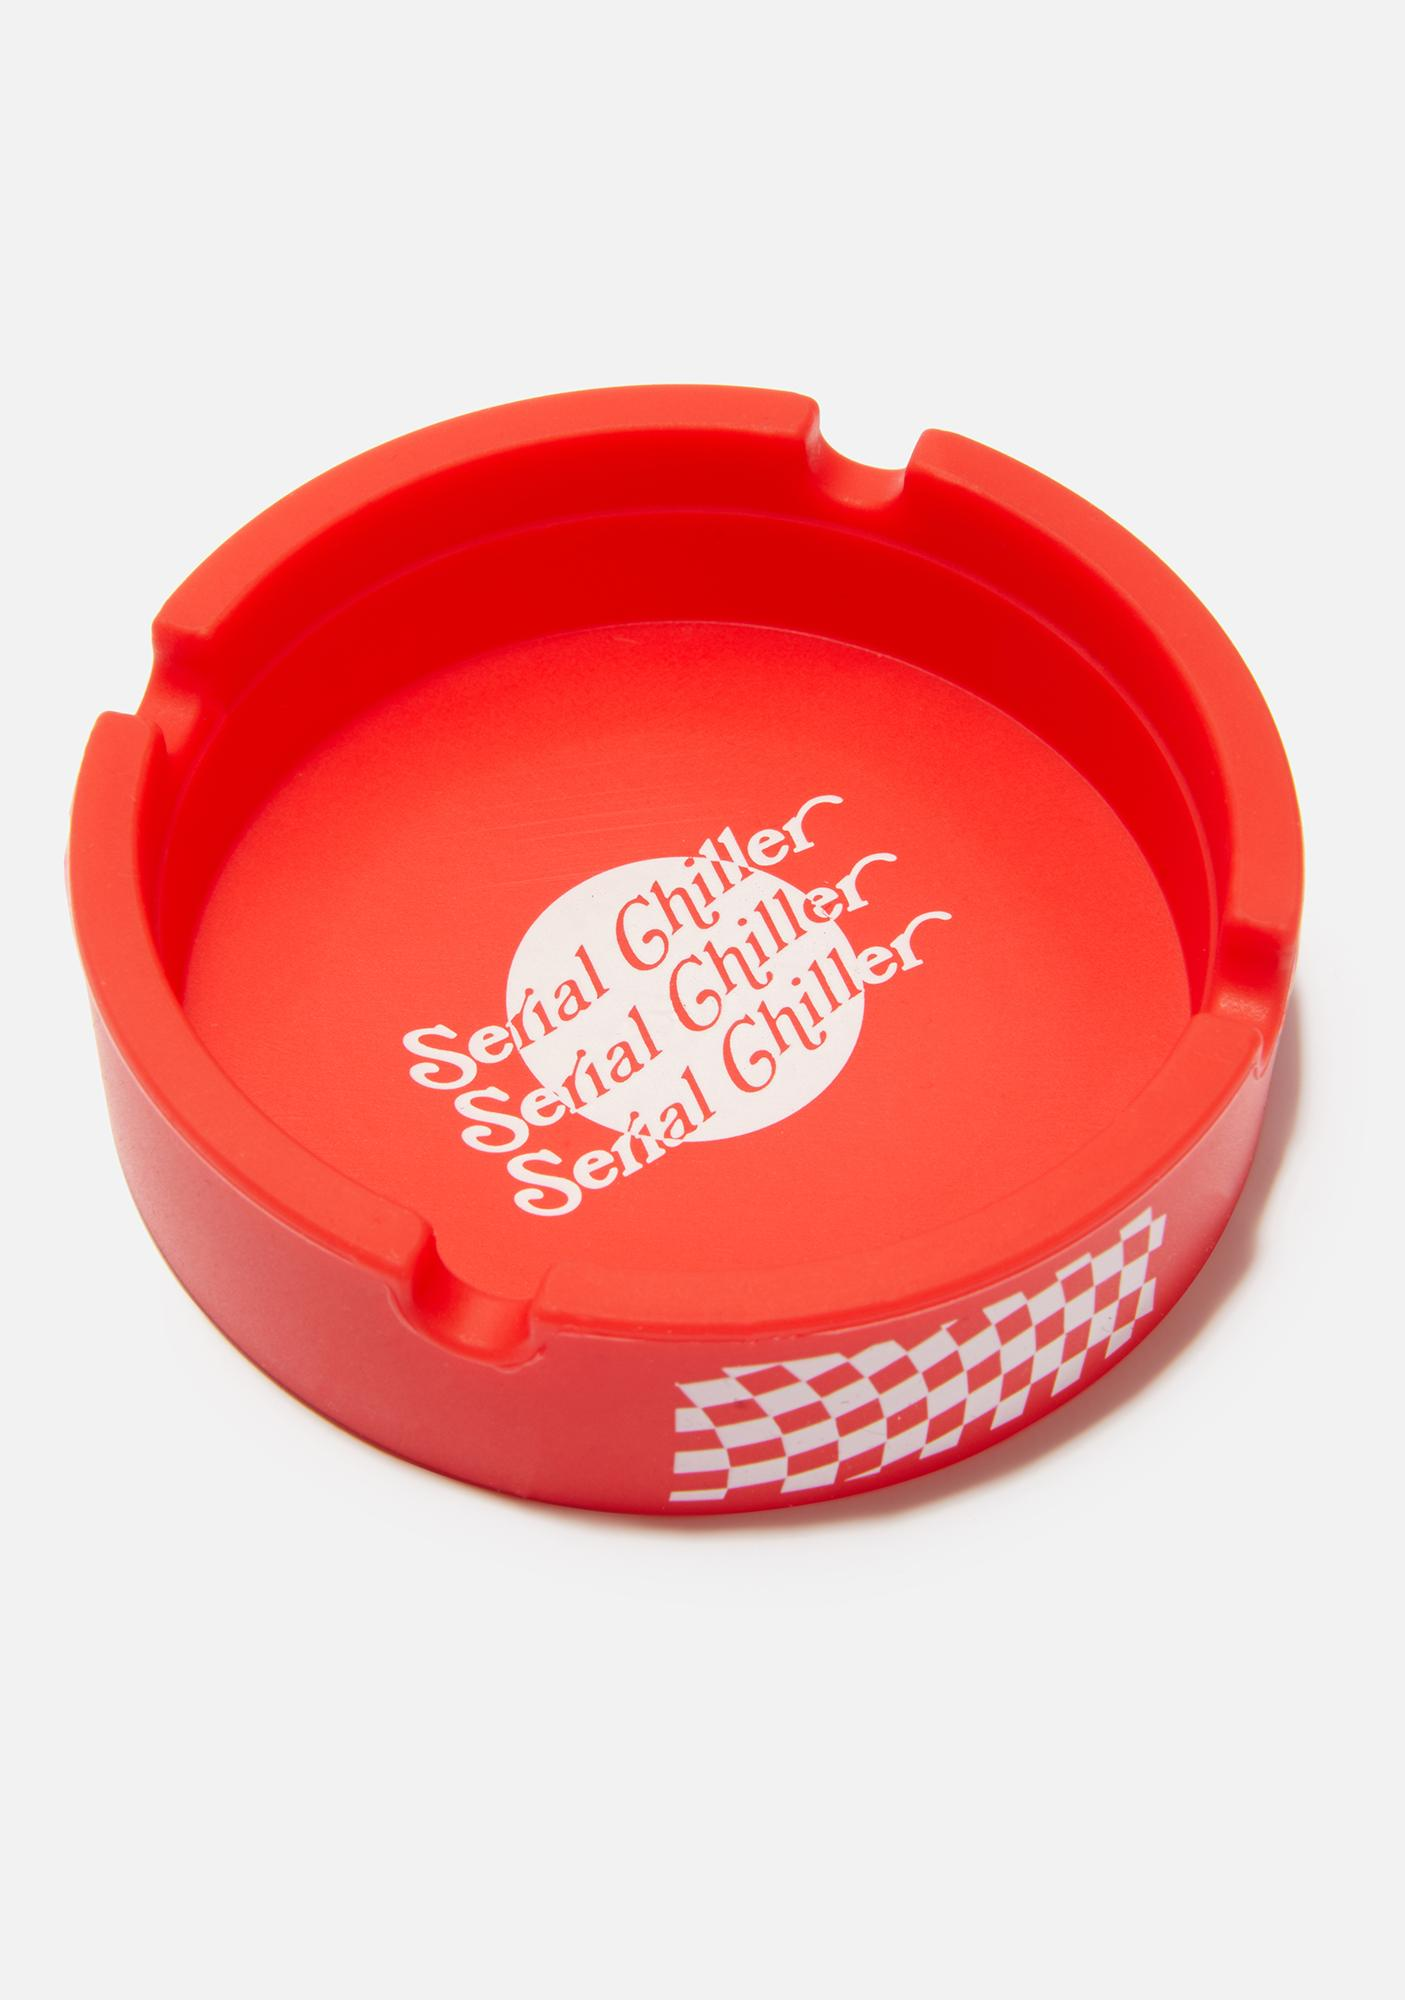 A Shop of Things Serial Chiller Ash Tray